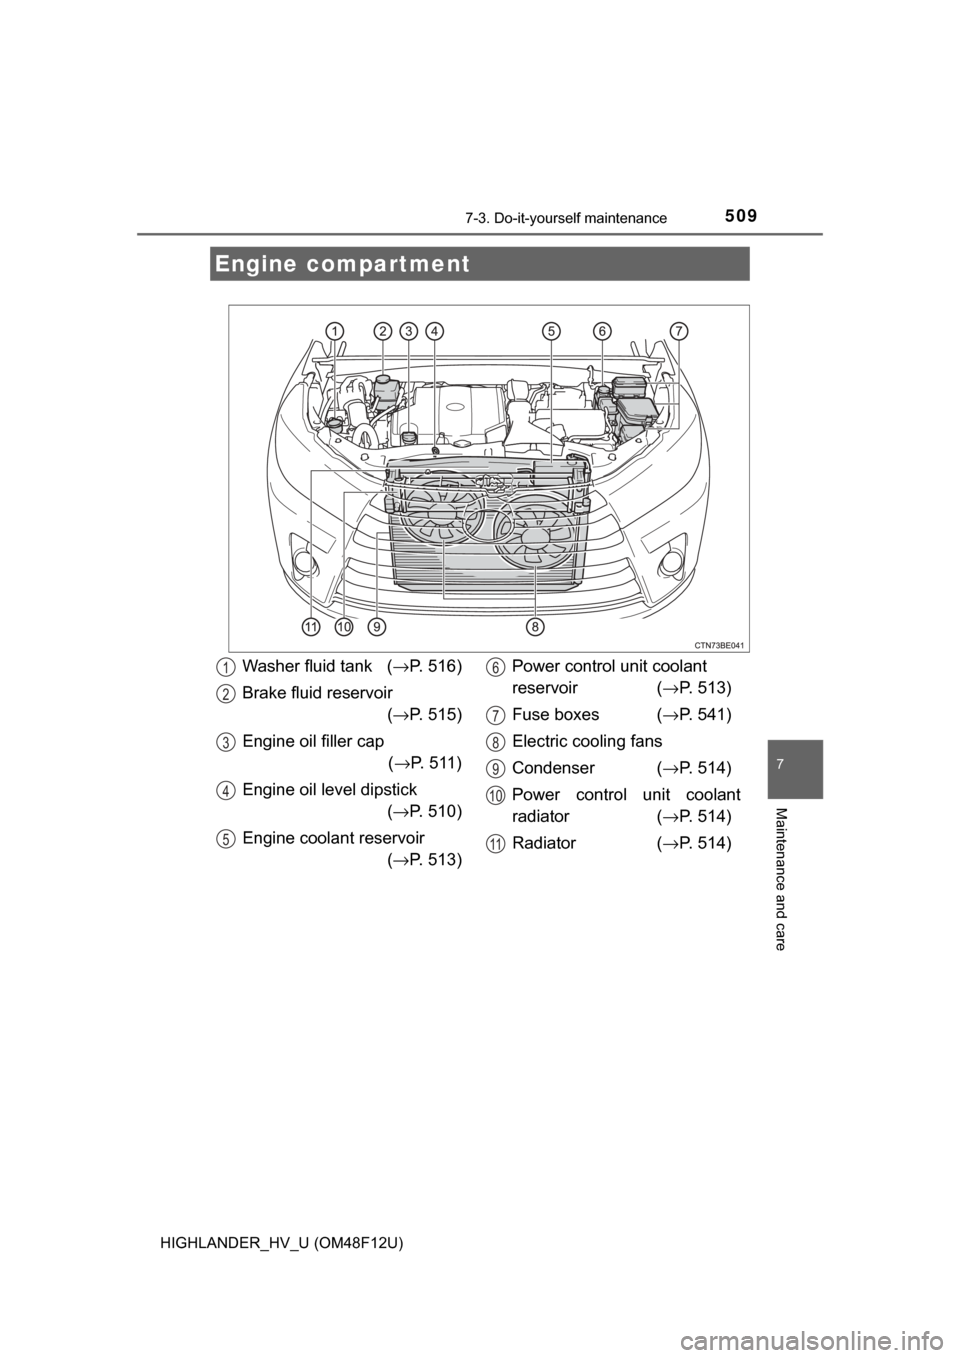 Oil Level Toyota Highlander Hybrid 2017 Xu50 3g Owners Manual Fuse Box Page 509